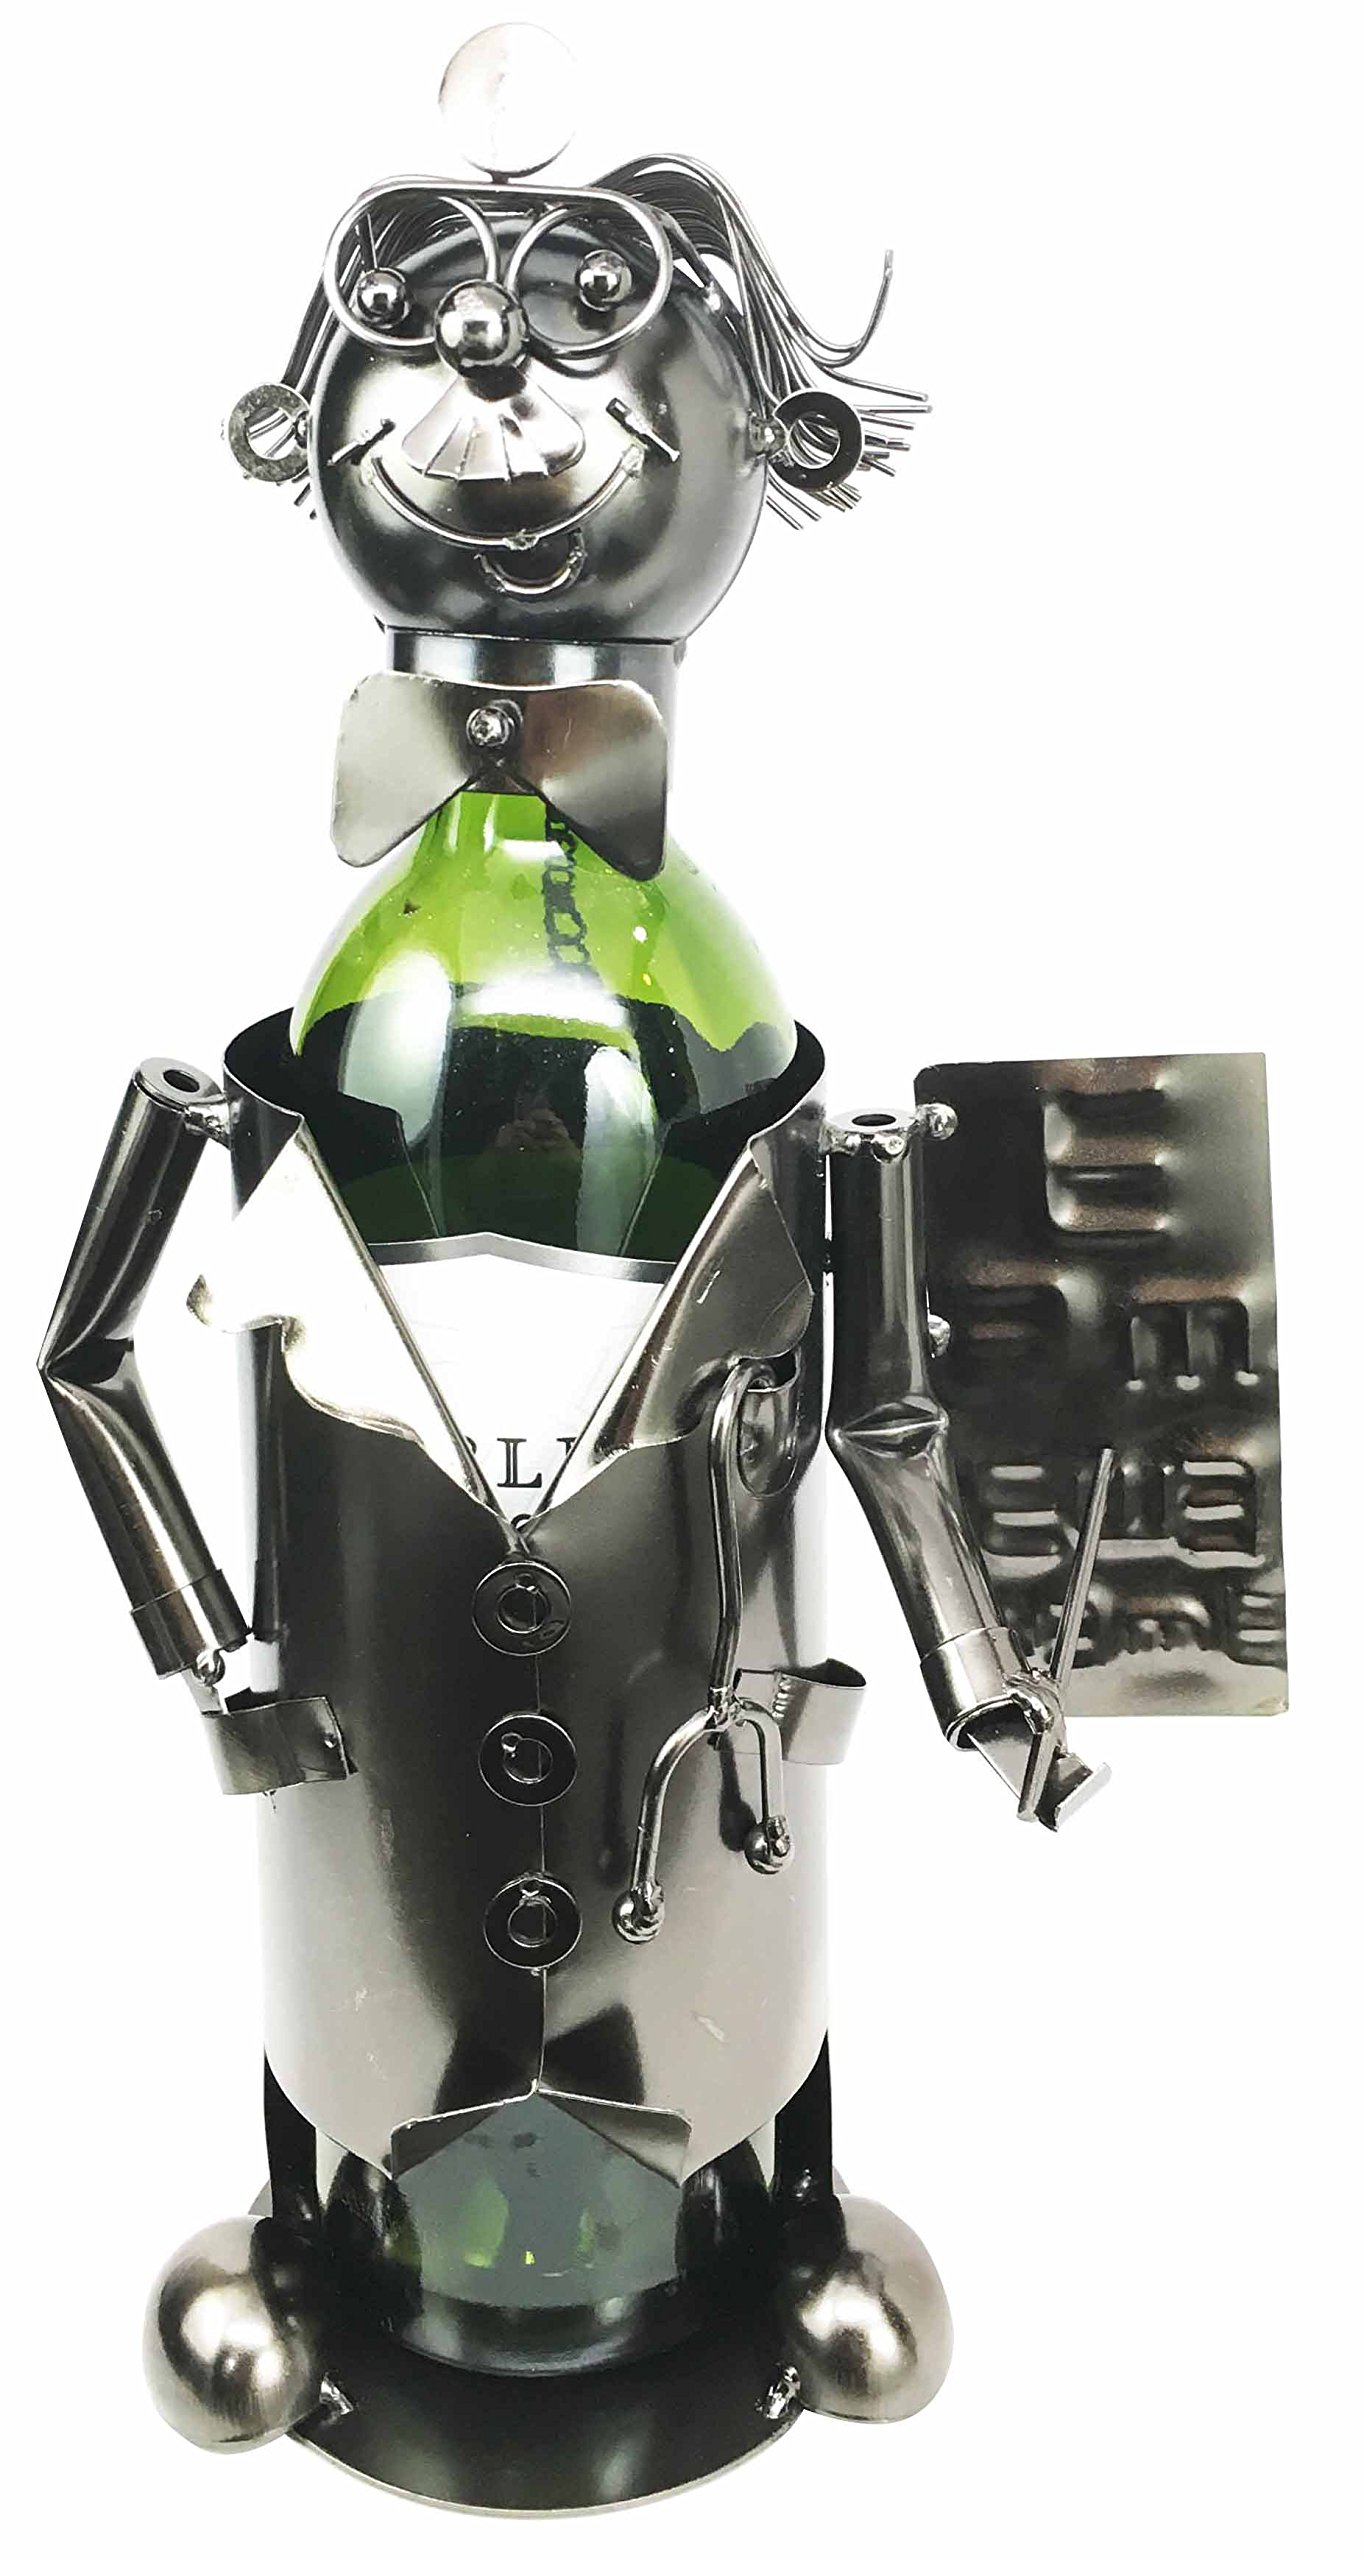 Clinical Optometrist Eye Doctor Performing Checkup Hand Made Steel Metal Wine Bottle Holder Caddy Great Gift For Doctors Physicians and Eye Surgeons